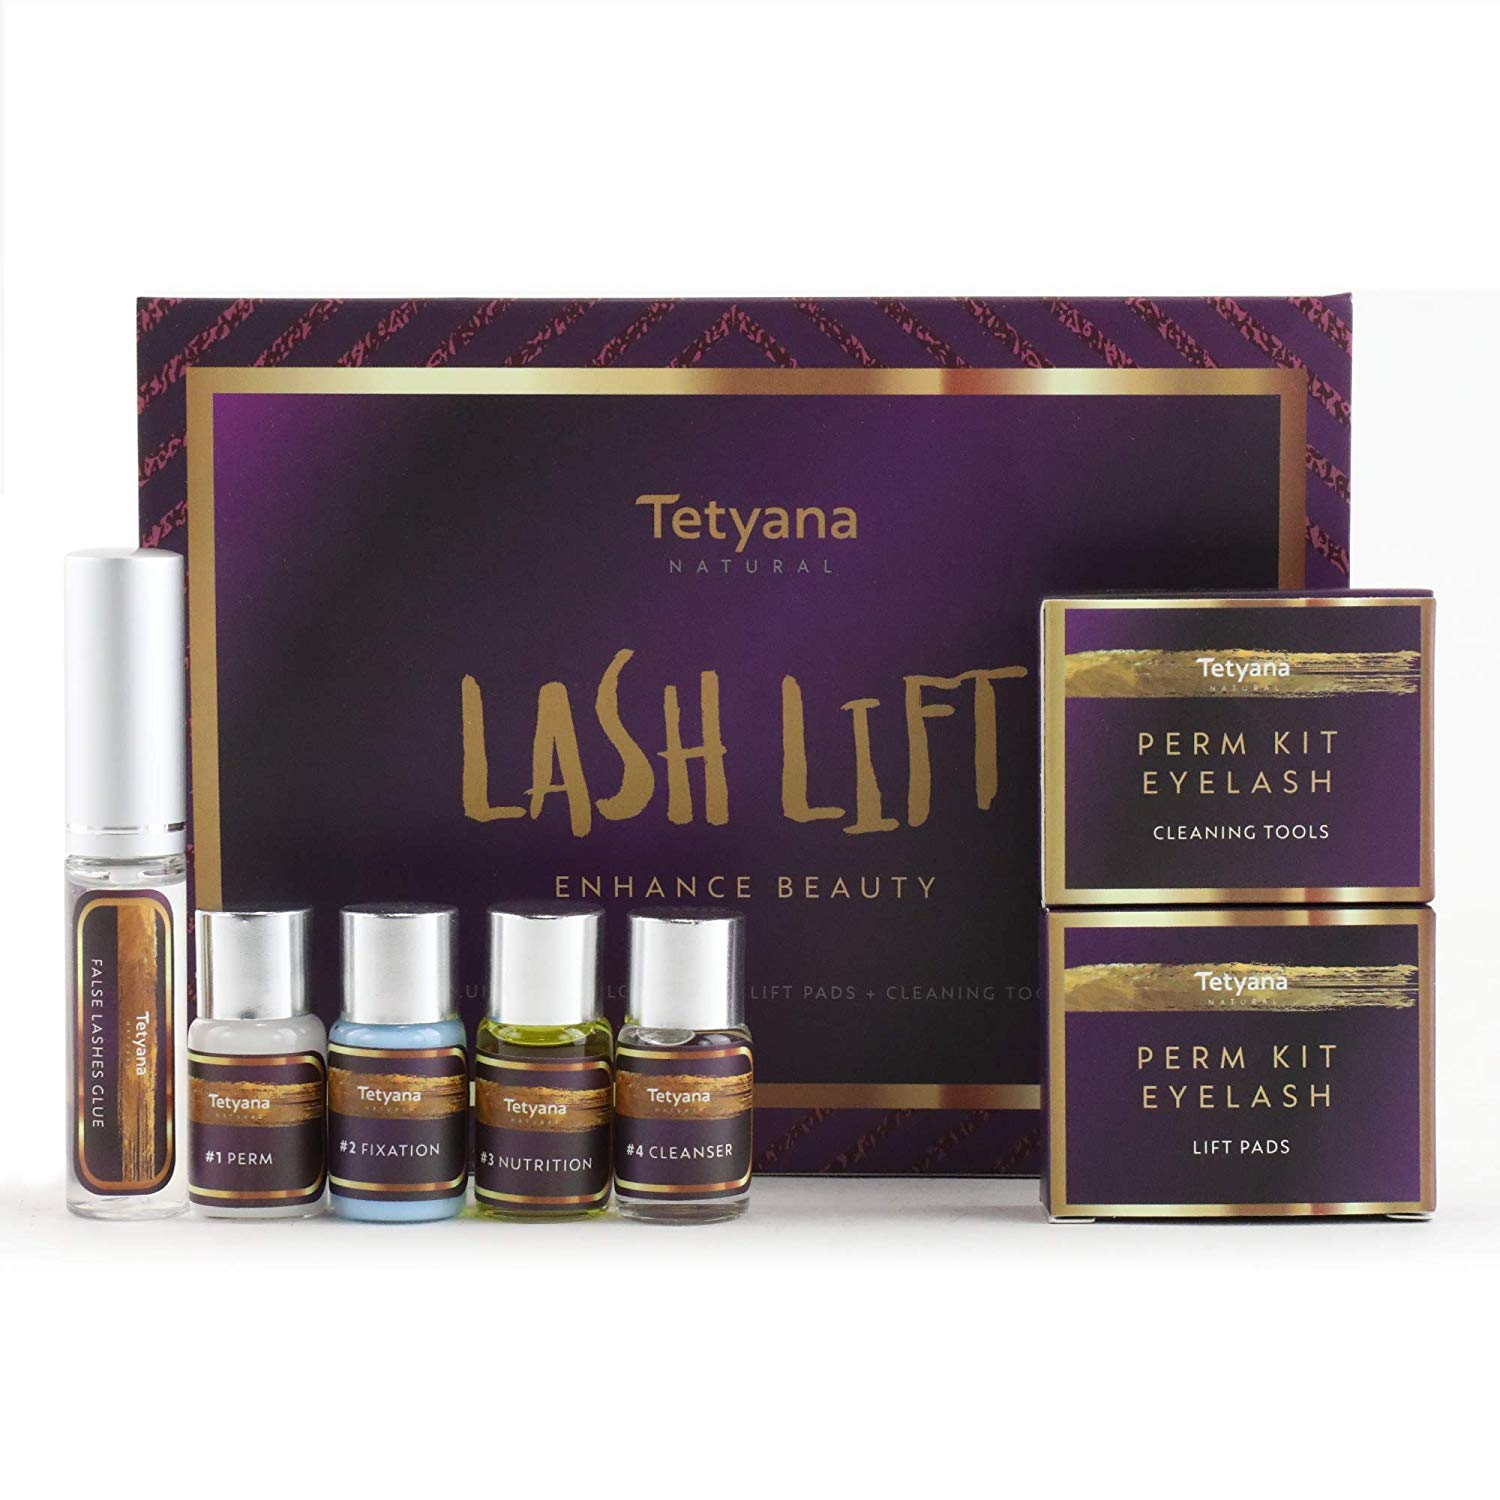 Tetyana naturals Eyelash Perm Kit, Professional Quality Lash Lift, Semi-Permanent Curling Perming Wave, Lotion & Liquid Set by Tetyana naturals (Image #1)